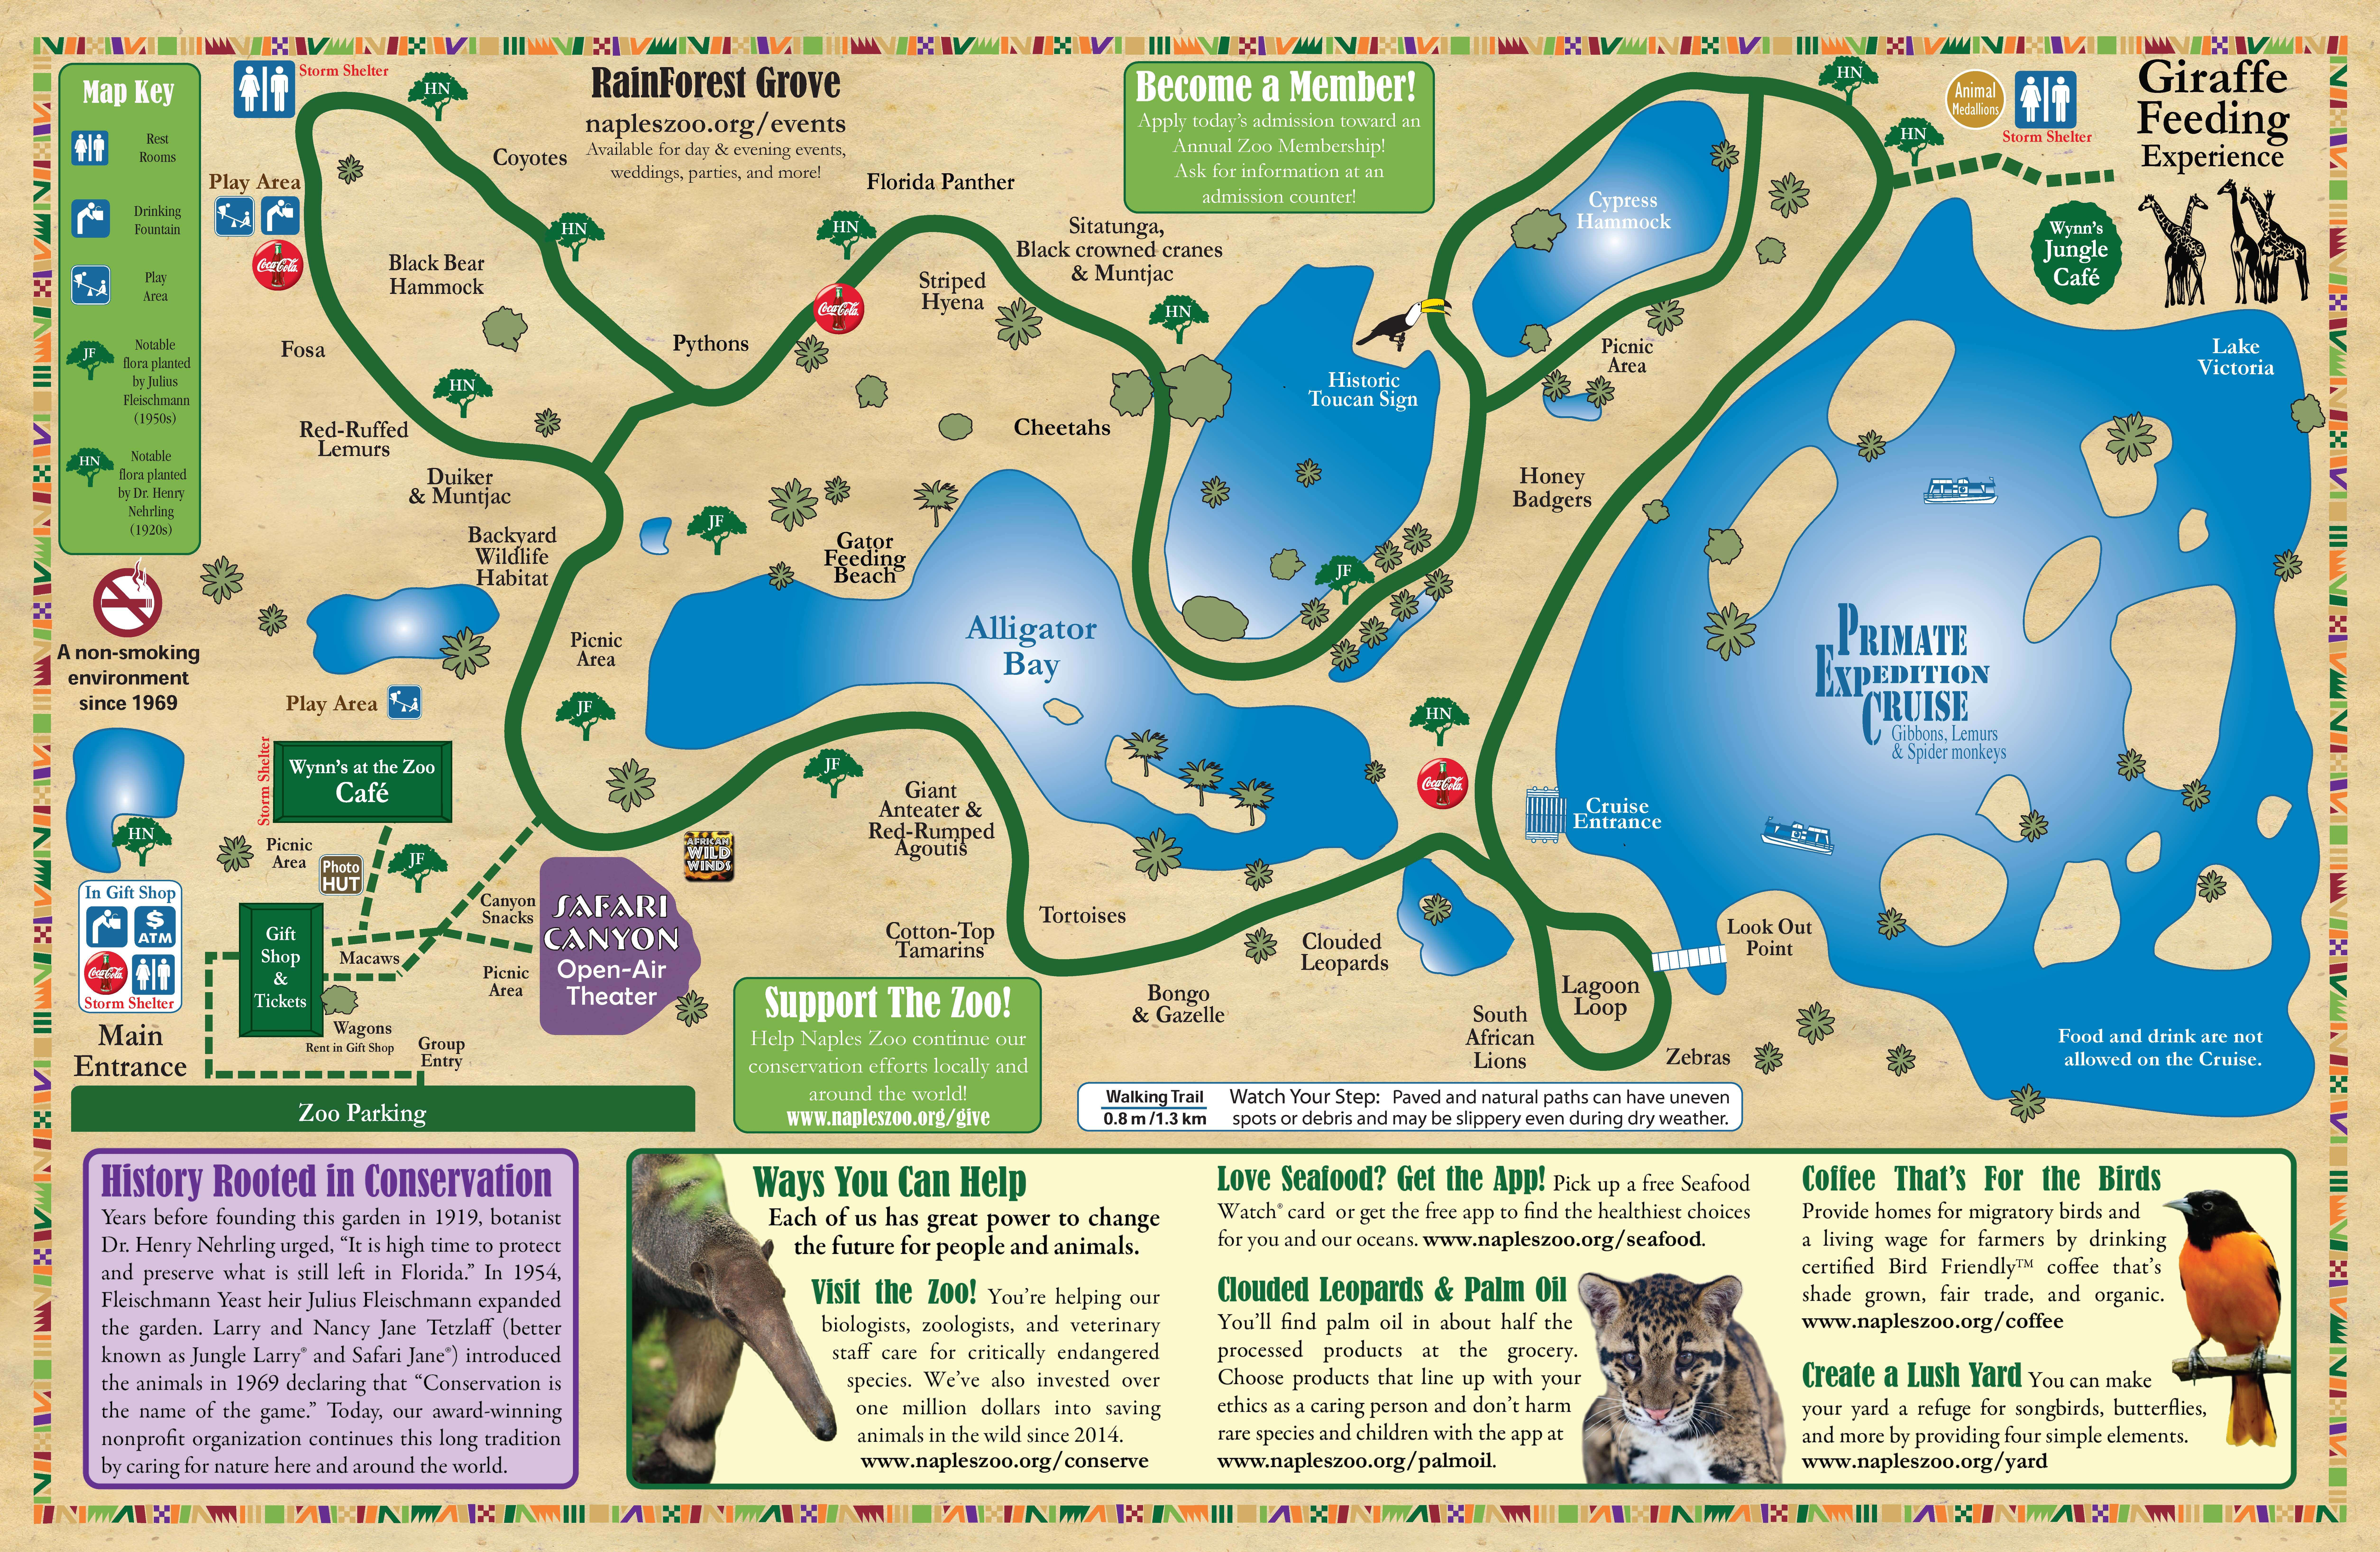 Zoo Map - Naples Zoo at Caribbean Gardens